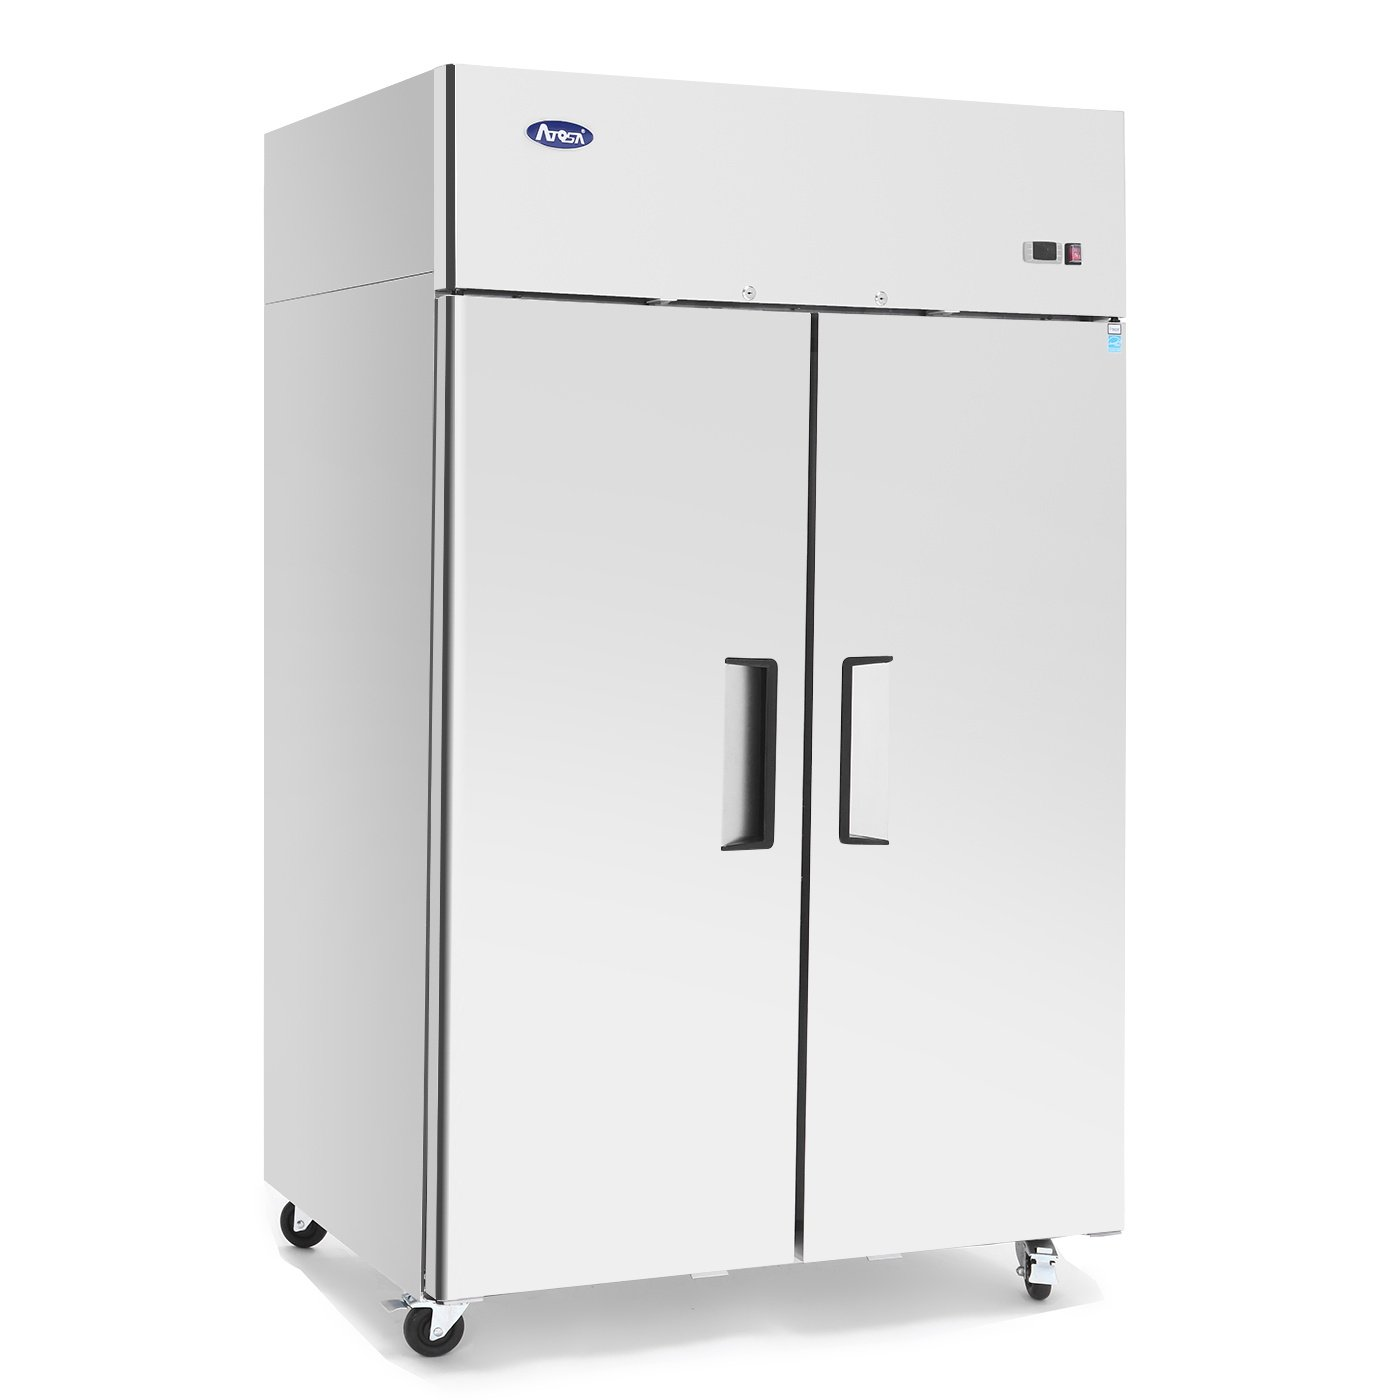 Commercial Refrigerator,ATOSA MBF8005 Double 2 Door Side By Side Stainless Steel Reach in Commercial Refrigerators for Restaurant, Energy Star, 44.5 cu.ft.33℉-38℉ ETL, Fast Delivery - Best Seller!